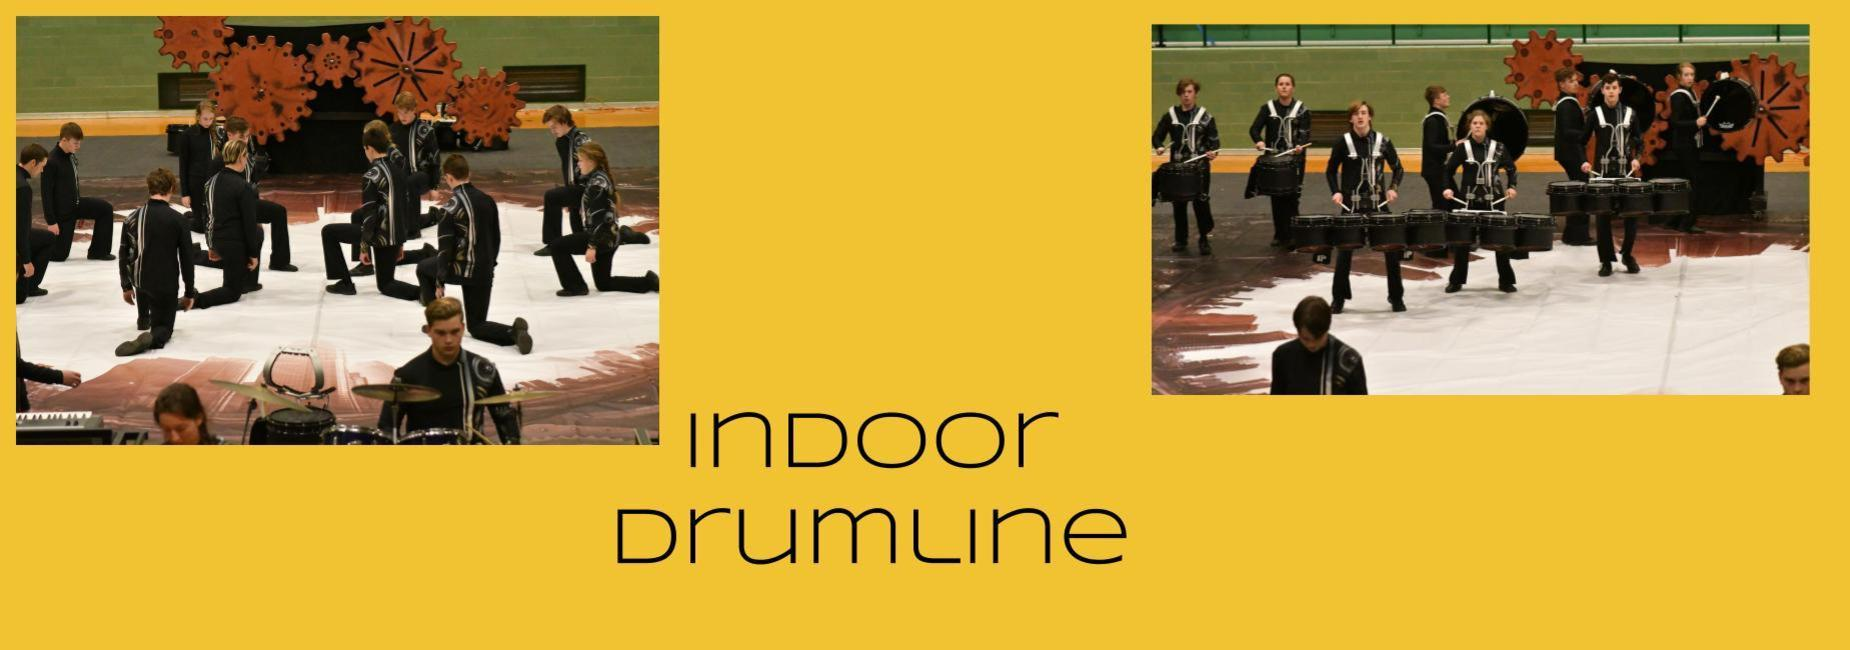 indoor drumline